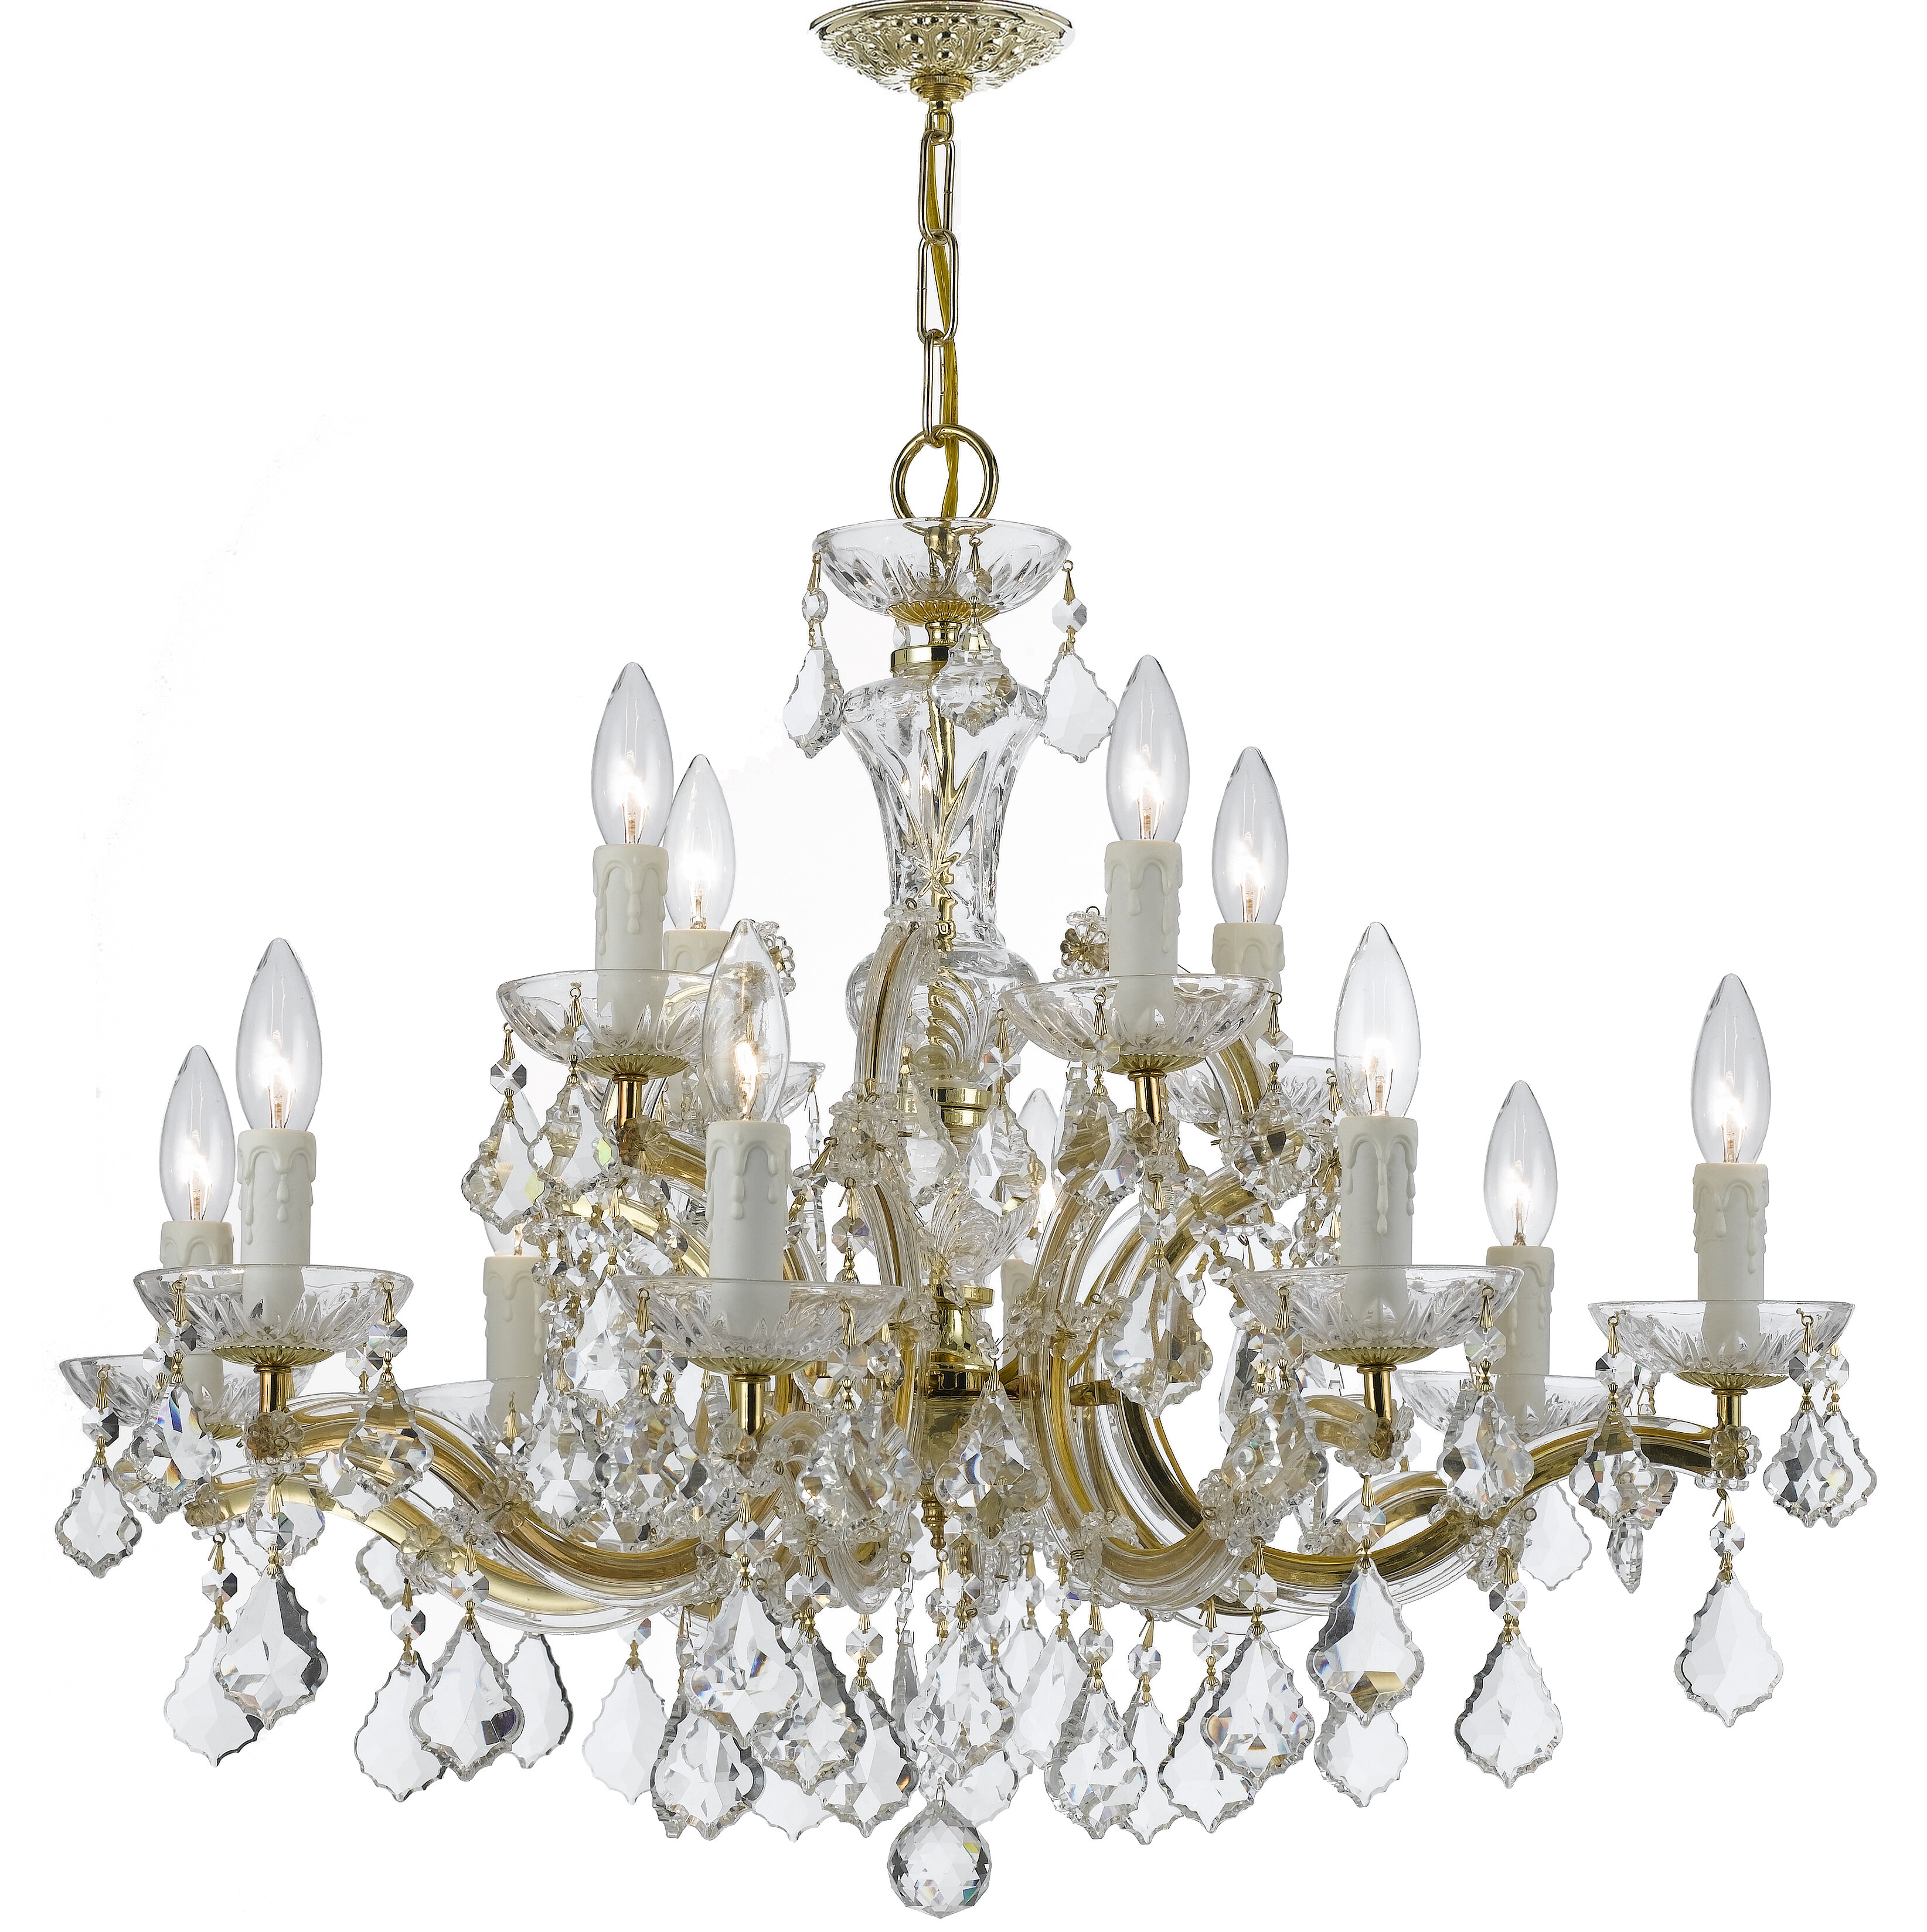 chandelier crystal shipping lighting overstock empress free today product garden home x